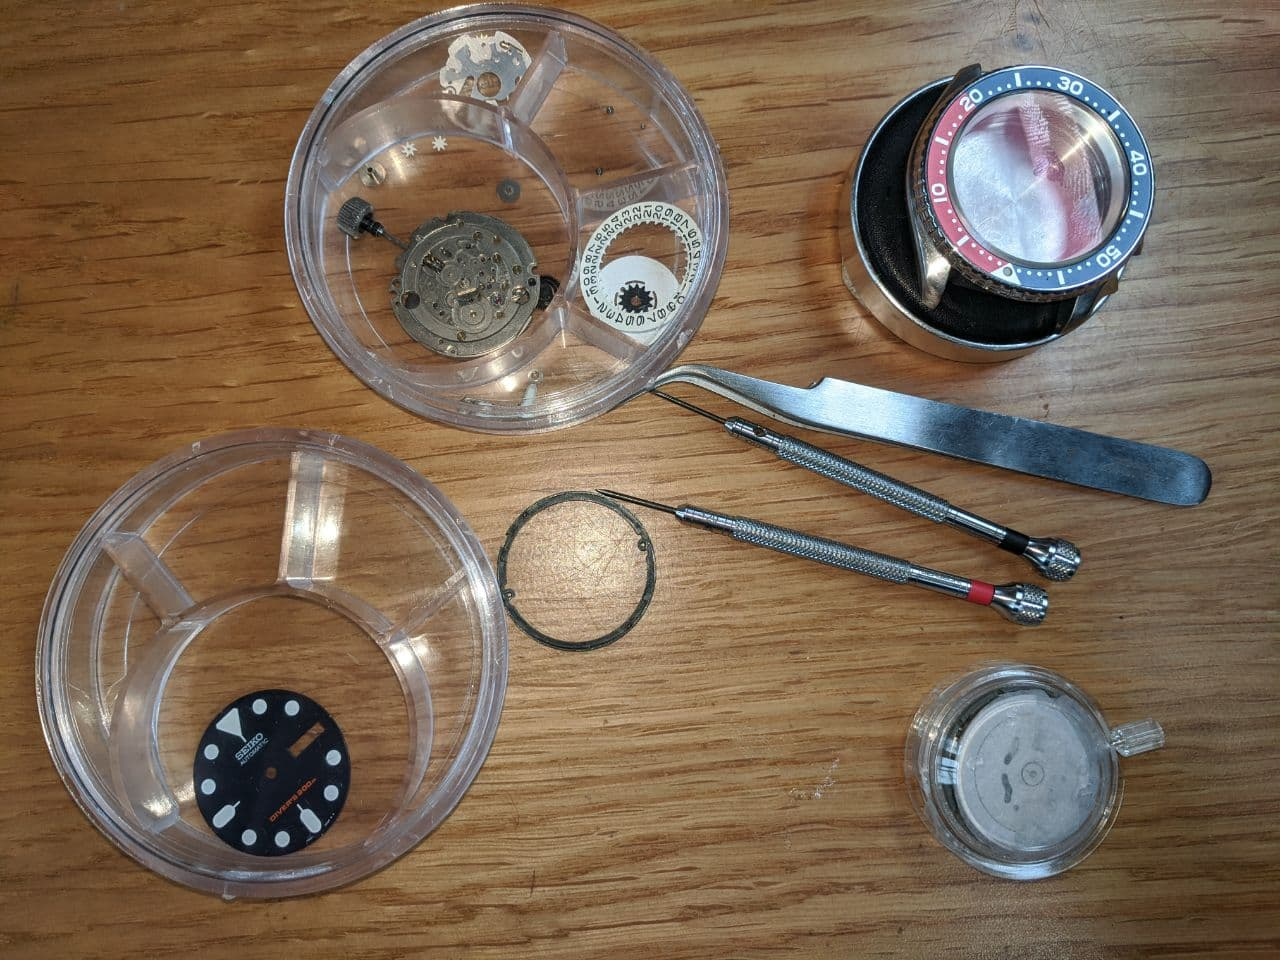 Seiko mods in the UK: Seiko 7S26 / 4R36 / NH36 day/date change. Movement upgrade replacement for Seiko Divers watch.